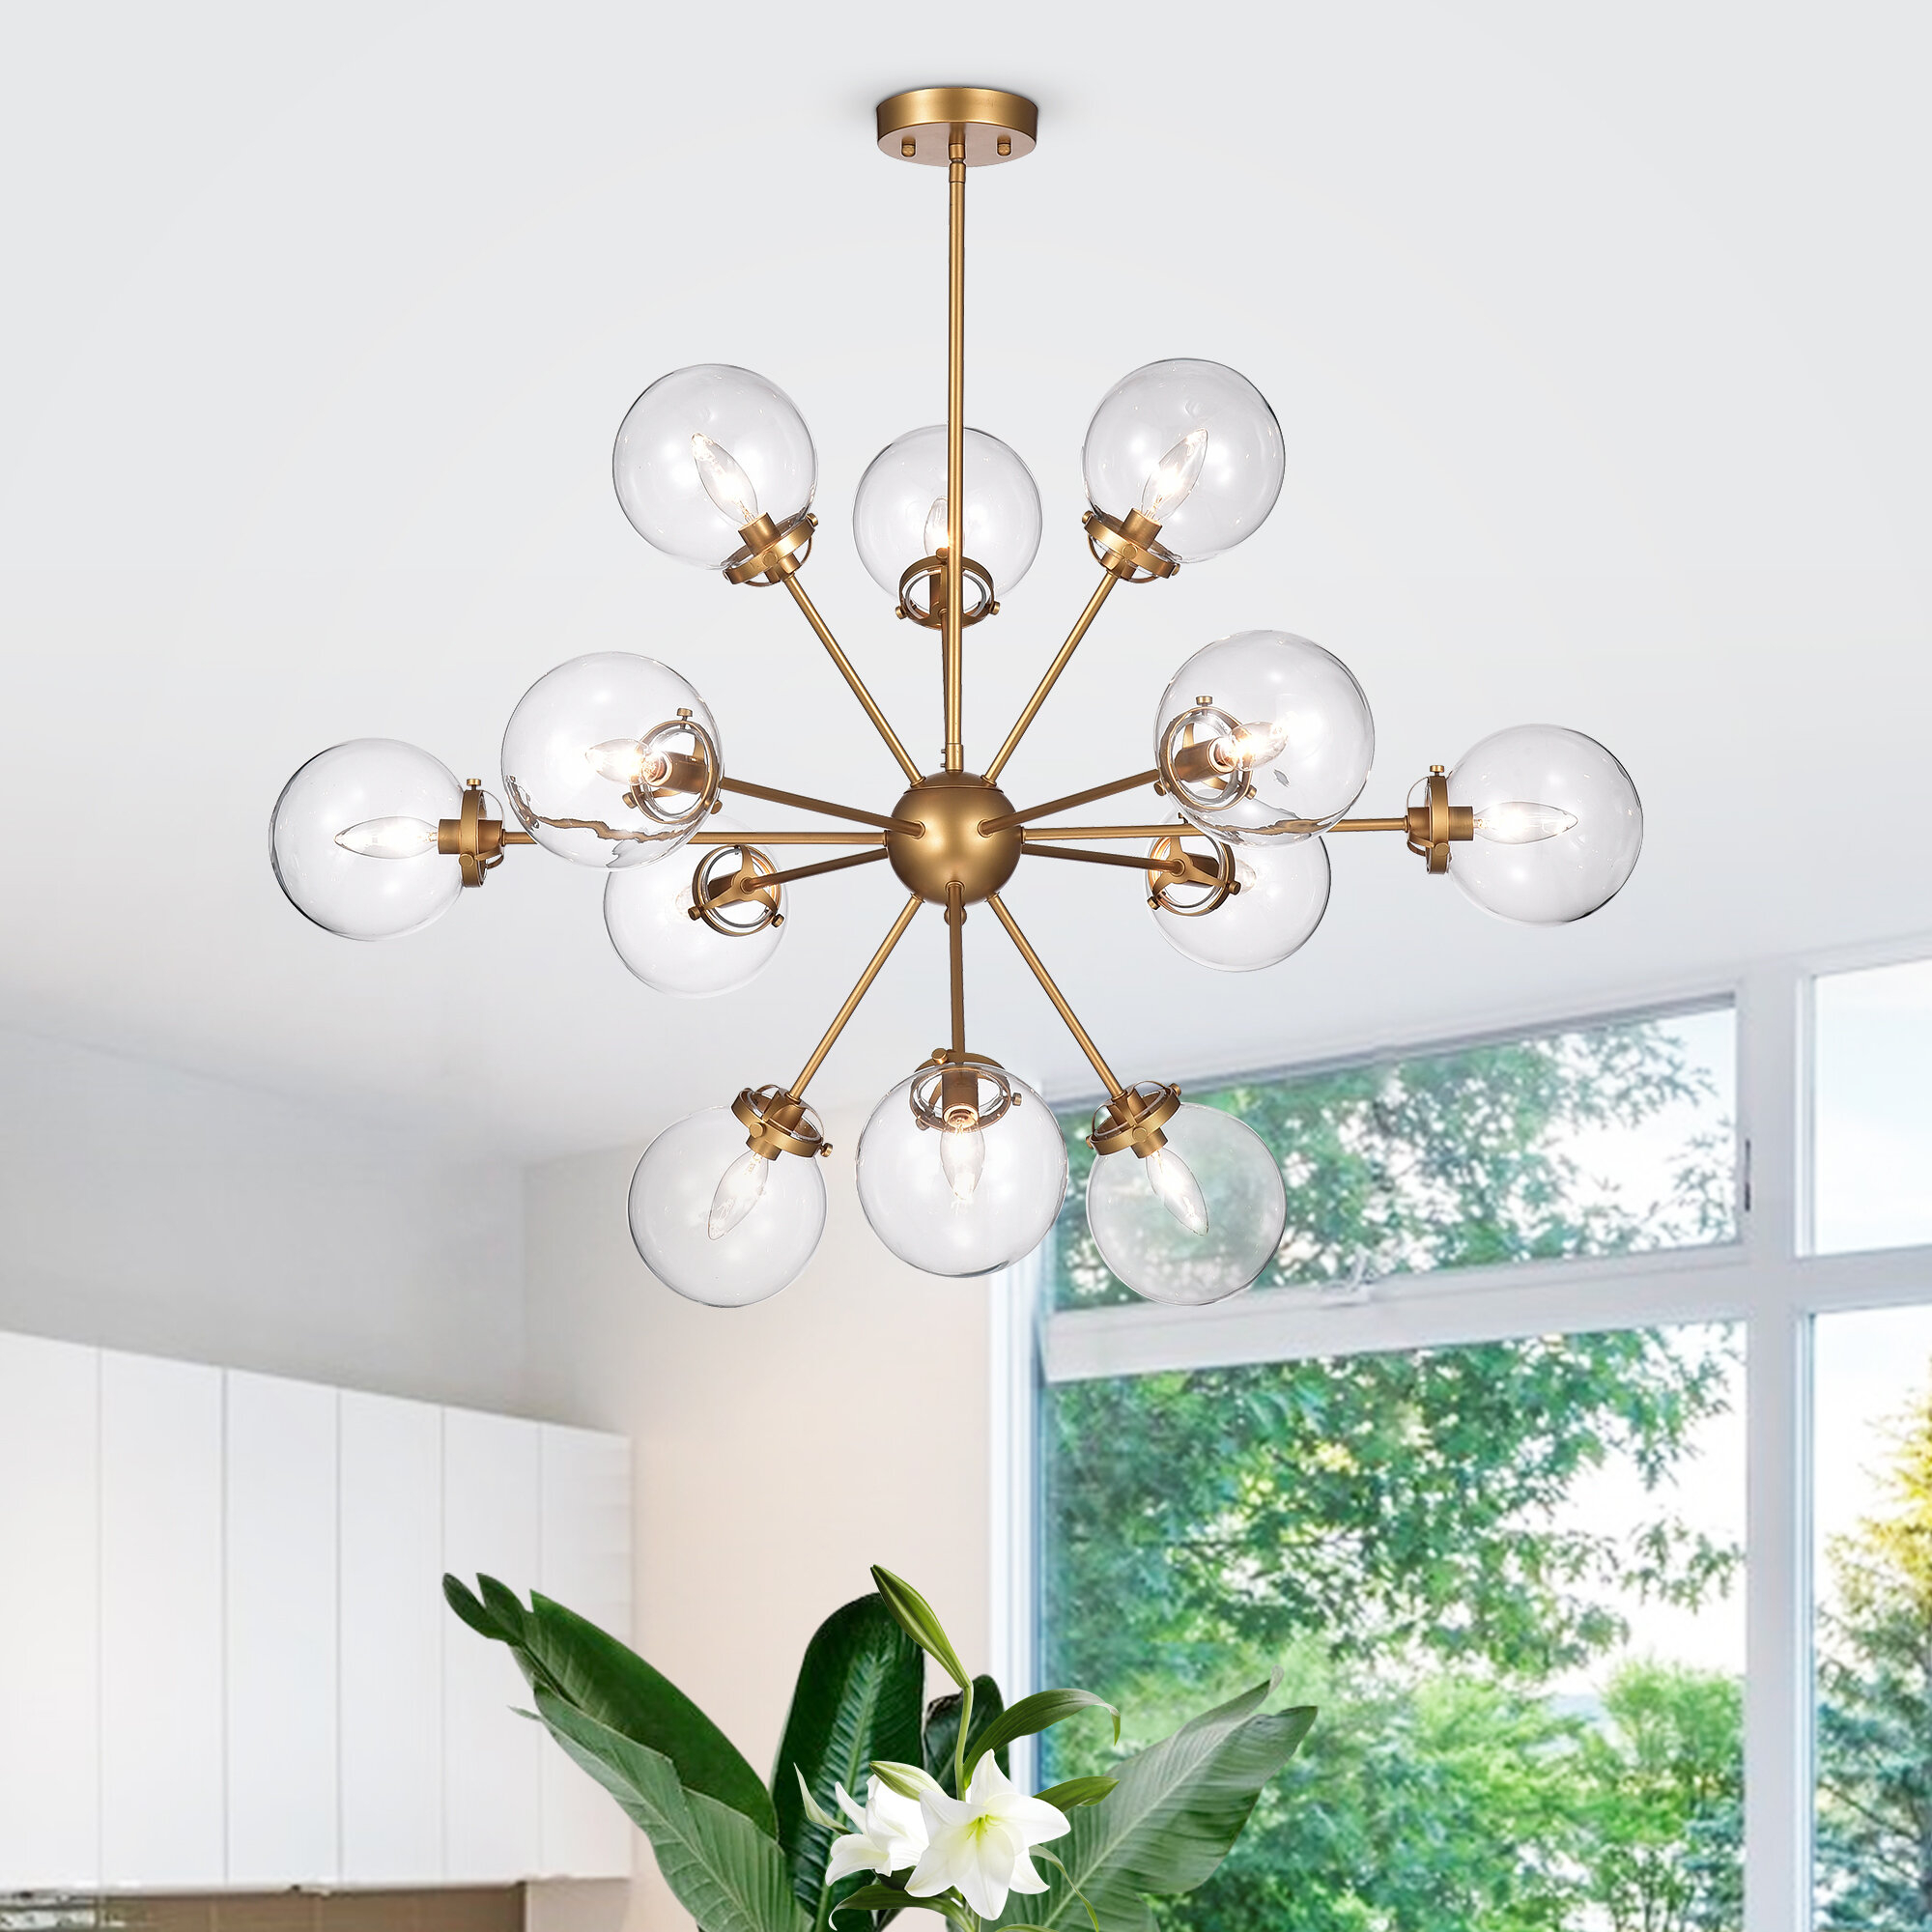 Natividad 12-Light Sputnik Chandelier intended for Asher 12-Light Sputnik Chandeliers (Image 24 of 30)